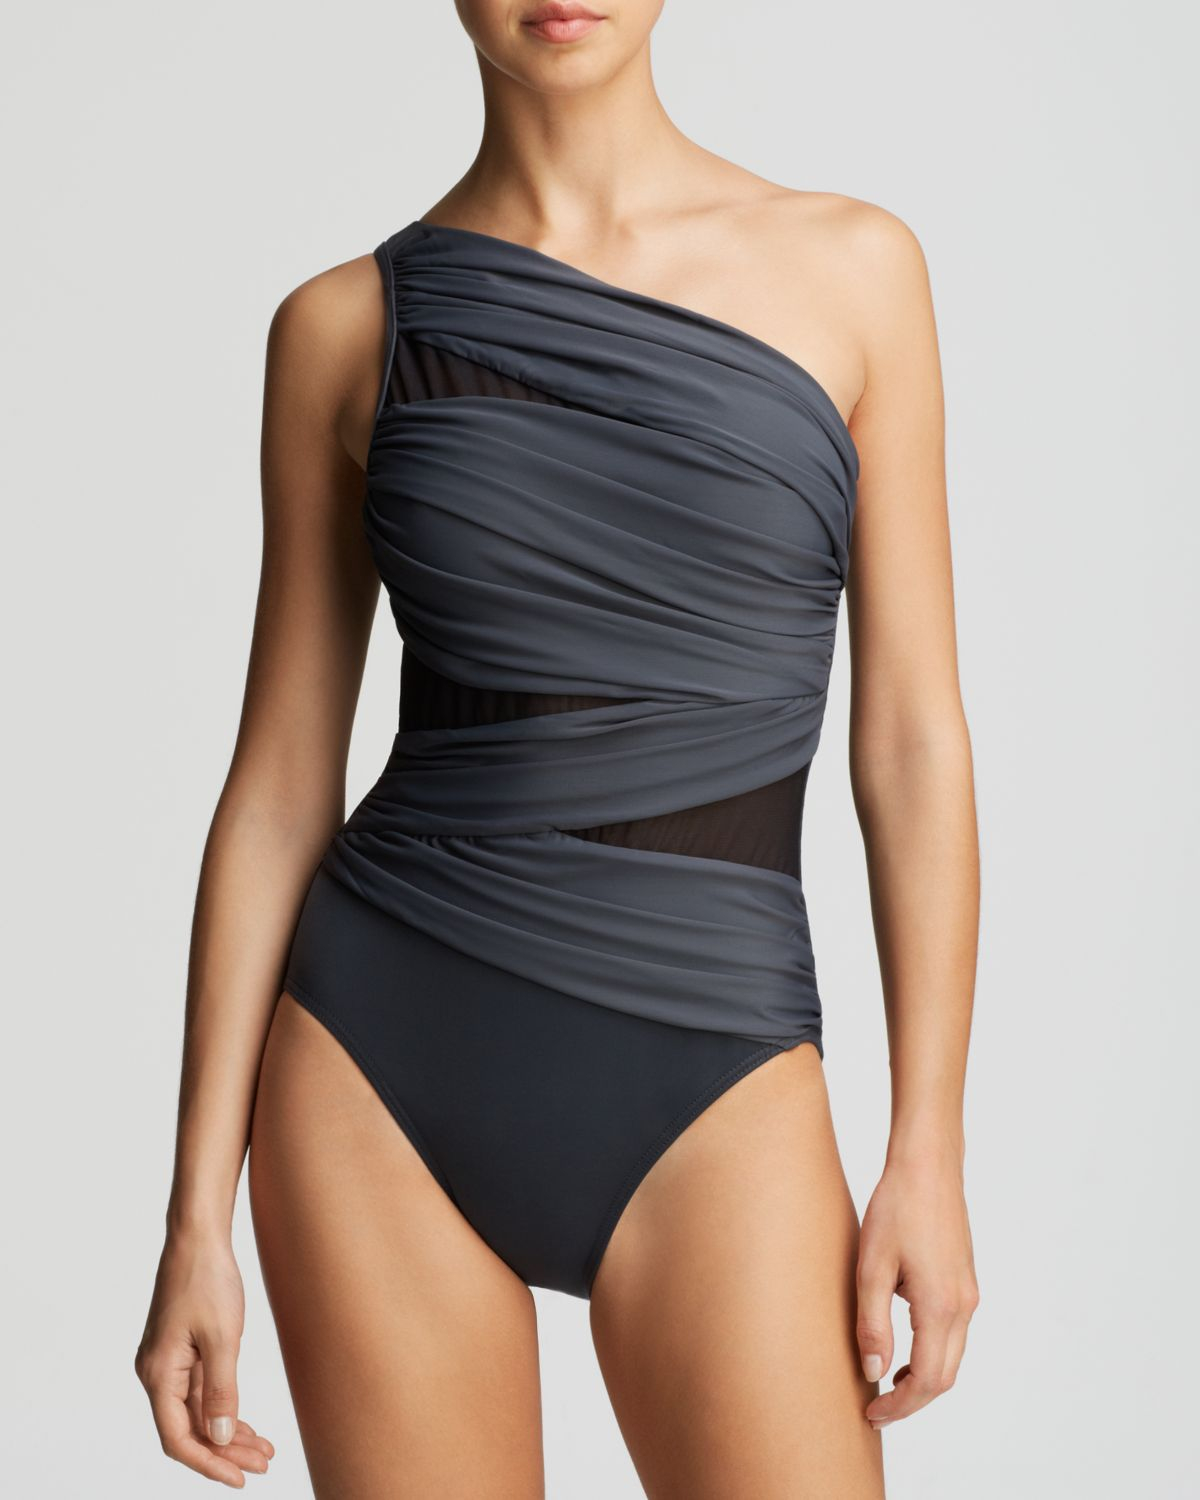 af8be56c9e Miraclesuit Net Work Jena One Piece Swimsuit in Gray - Lyst